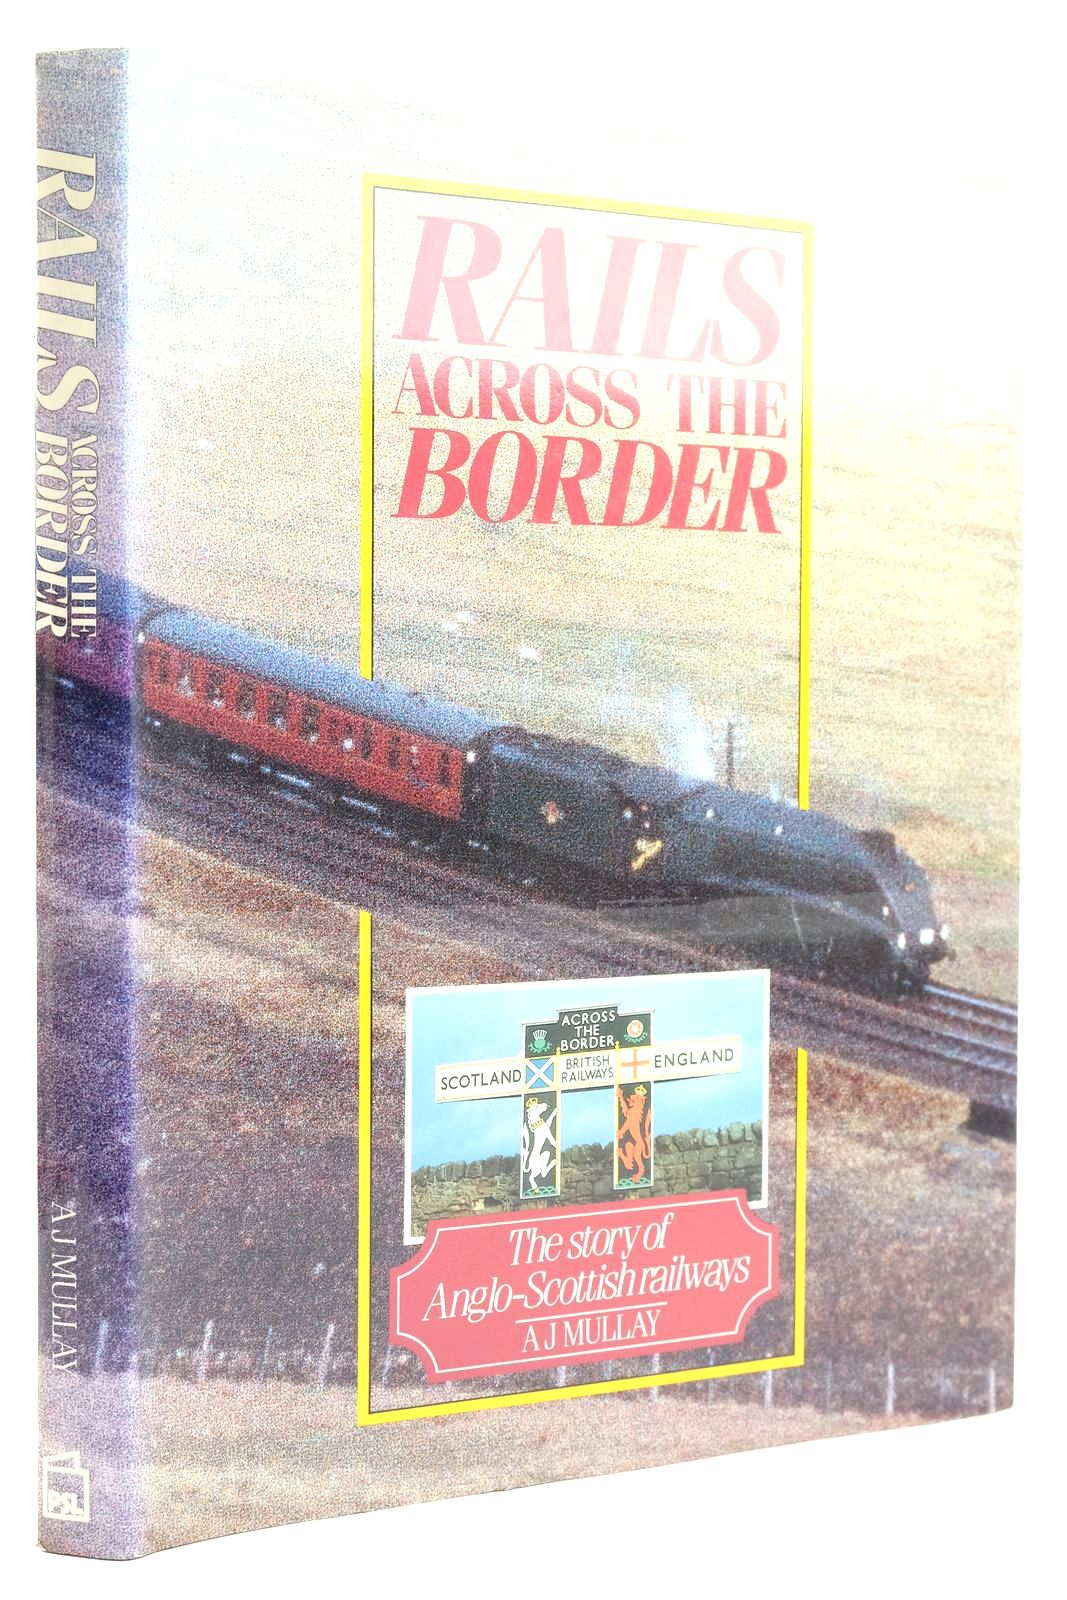 Photo of RAILS ACROSS THE BORDER THE STORY OF ANGLO-SCOTTISH RAILWAYS written by Mullay, A.J. published by Patrick Stephens Limited (STOCK CODE: 2133120)  for sale by Stella & Rose's Books